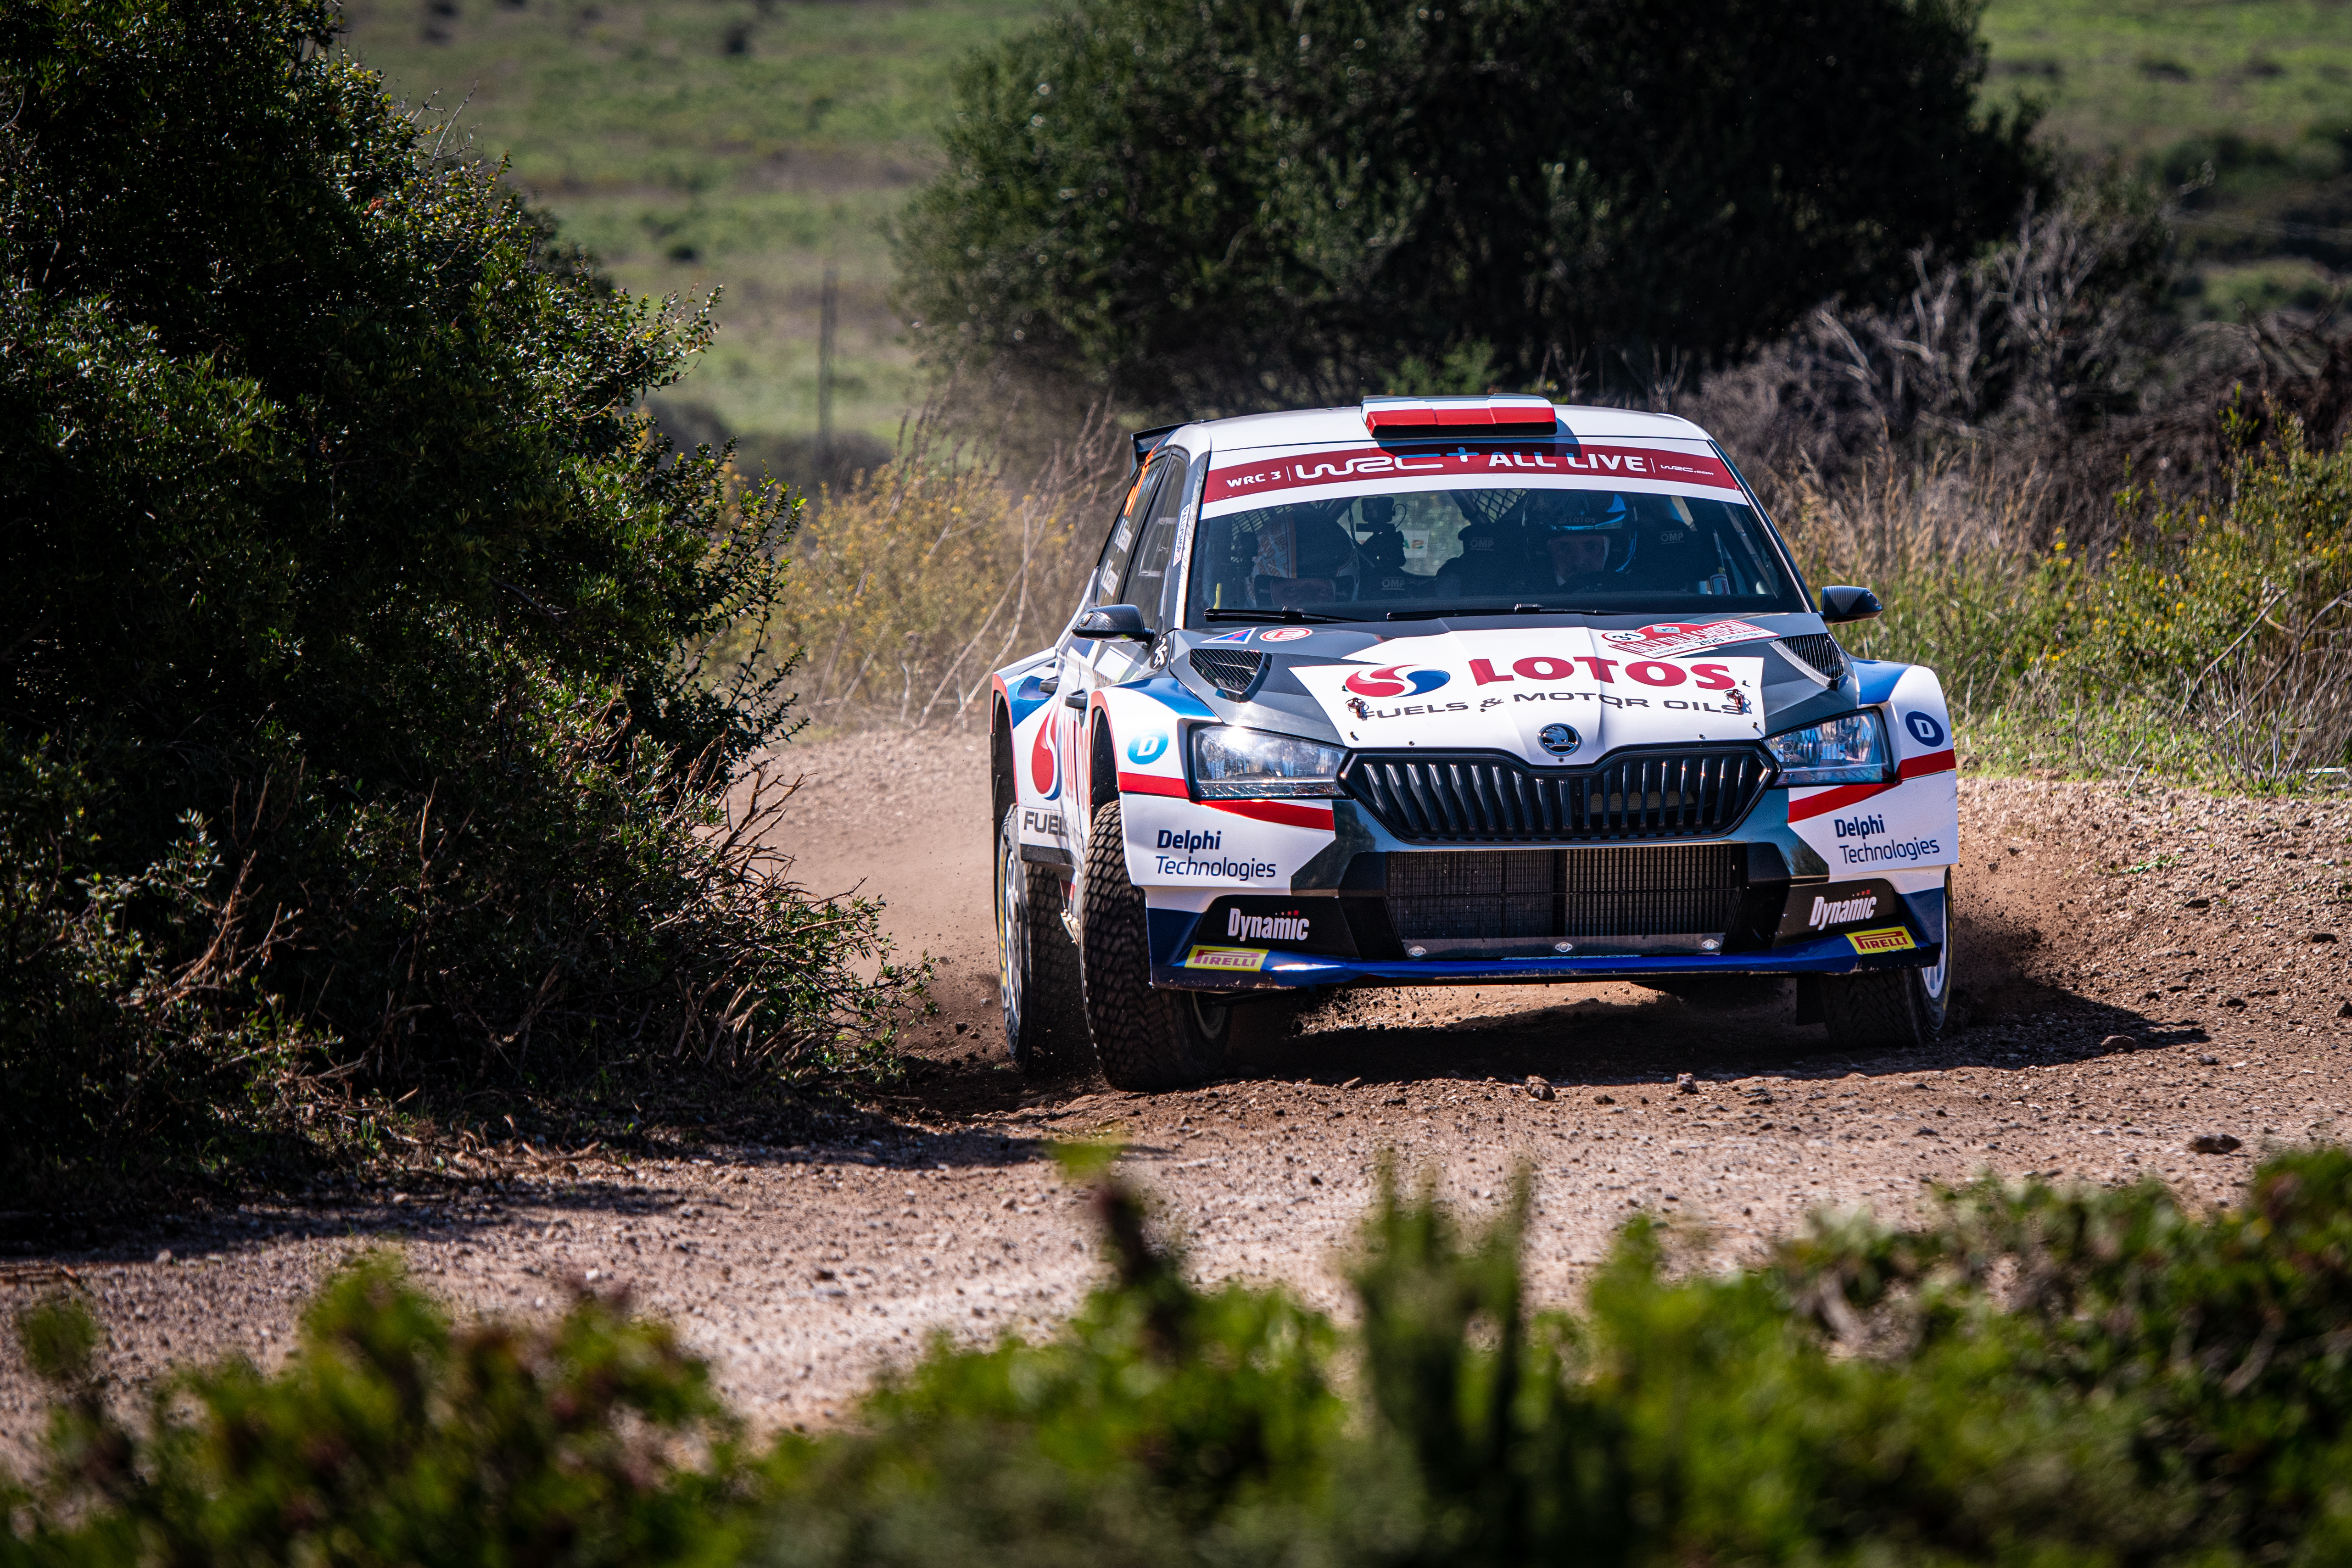 Rally Italia Sardegna: Two SKODA crews on top of WRC2 and WRC3 after tough first leg - Image 7